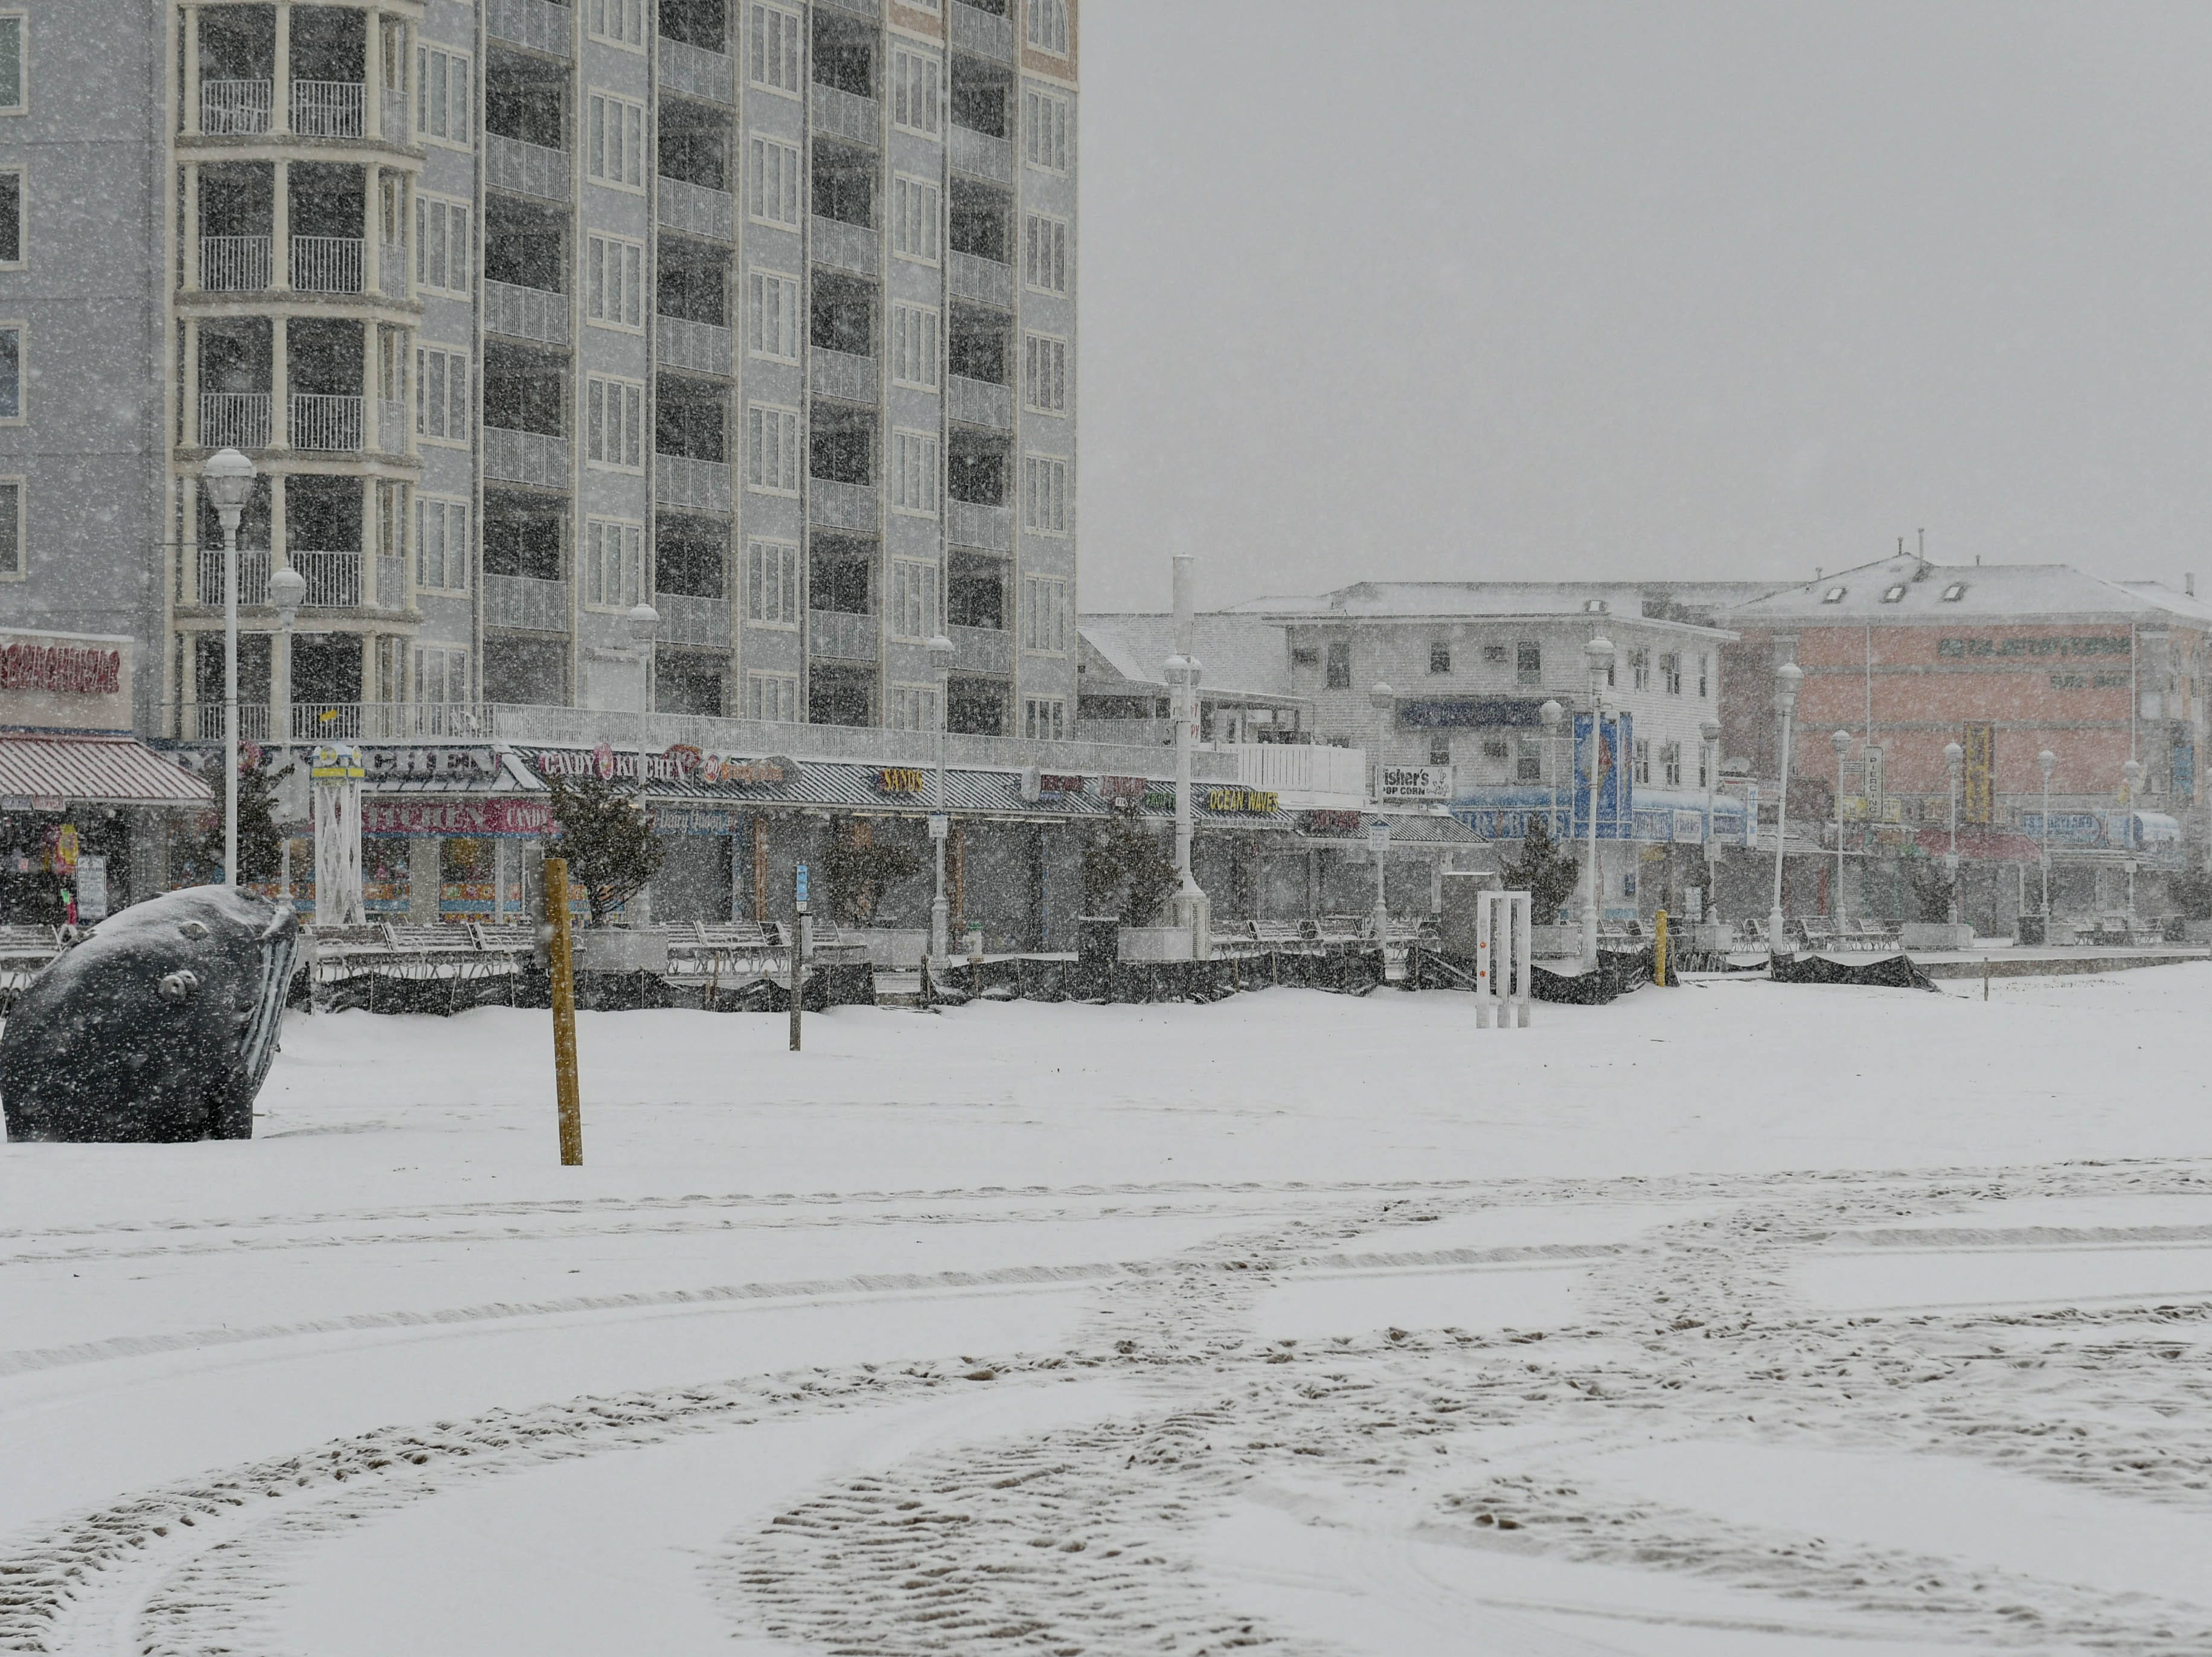 Snow coats the Ocean City boardwalk during a storm on Friday, Feb. 1, 2019.